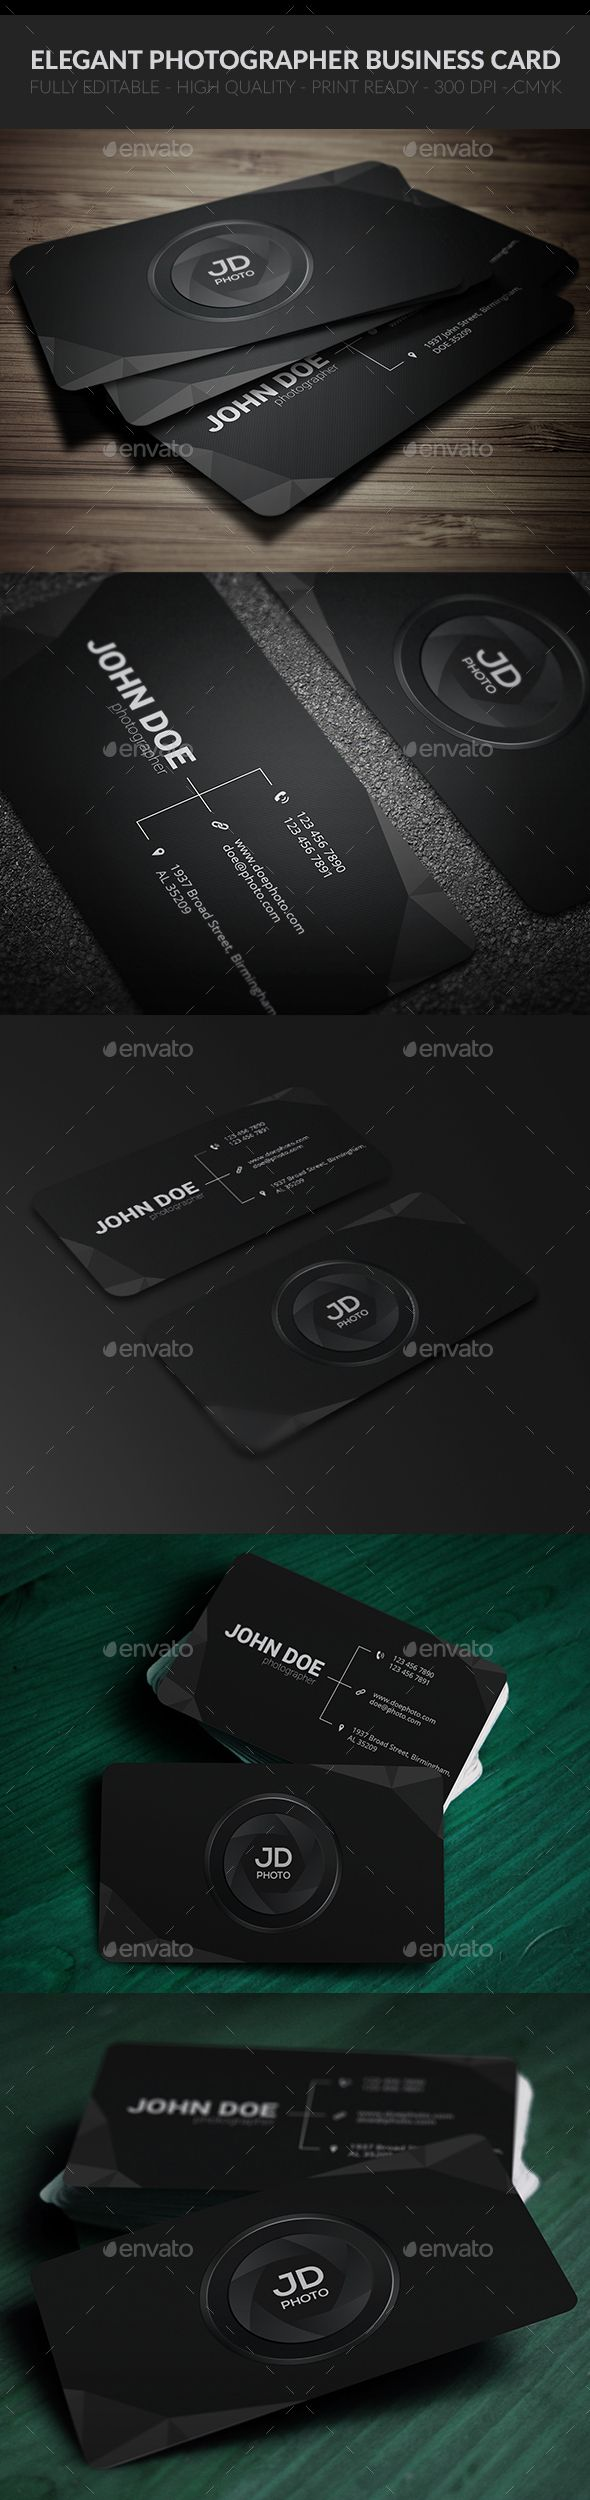 The 250 best photography business card design images on pinterest elegant photographer business card accmission Choice Image